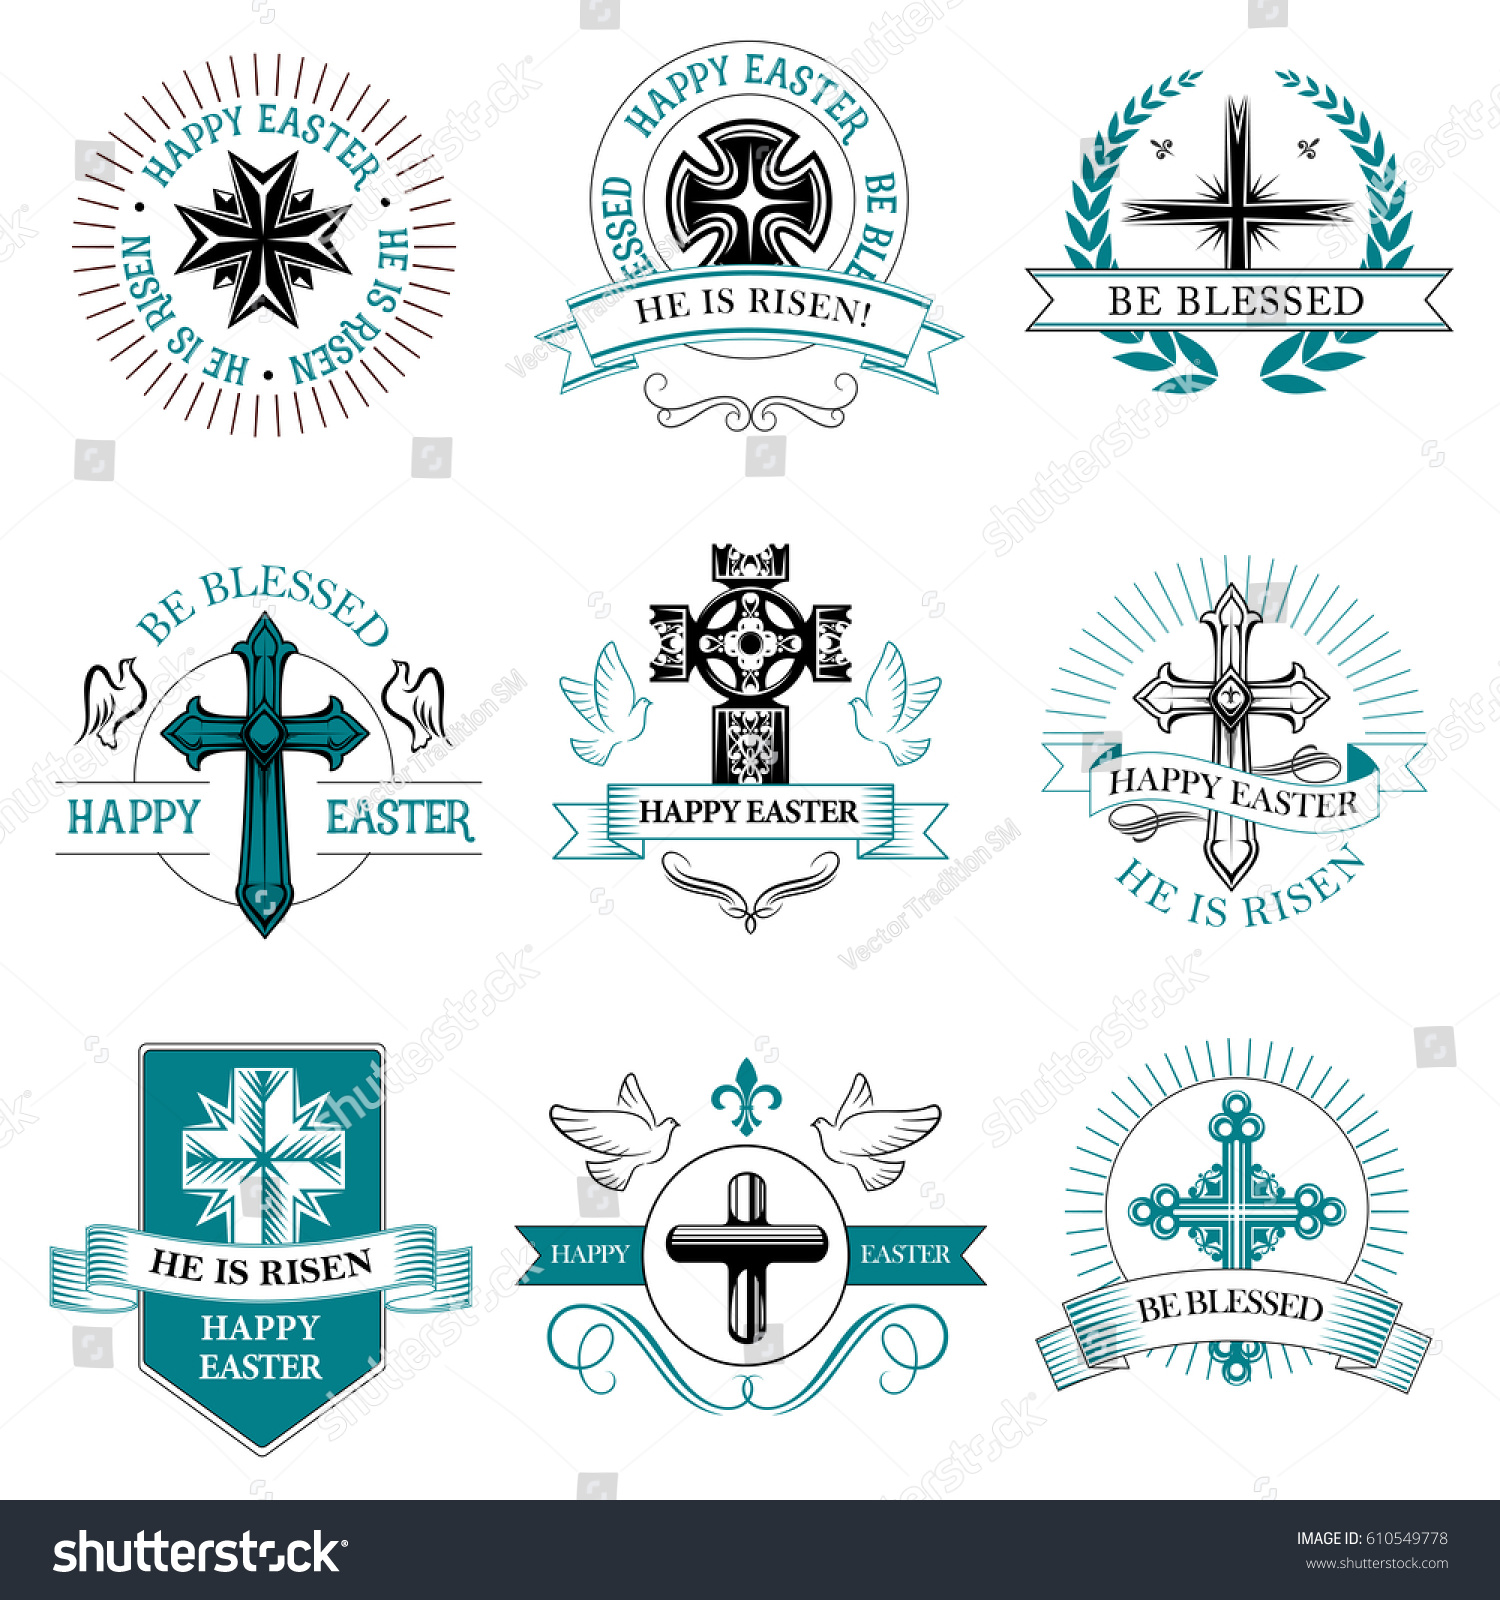 Easter Paschal Greeting Icons Crucifix Cross Stock Vector 610549778